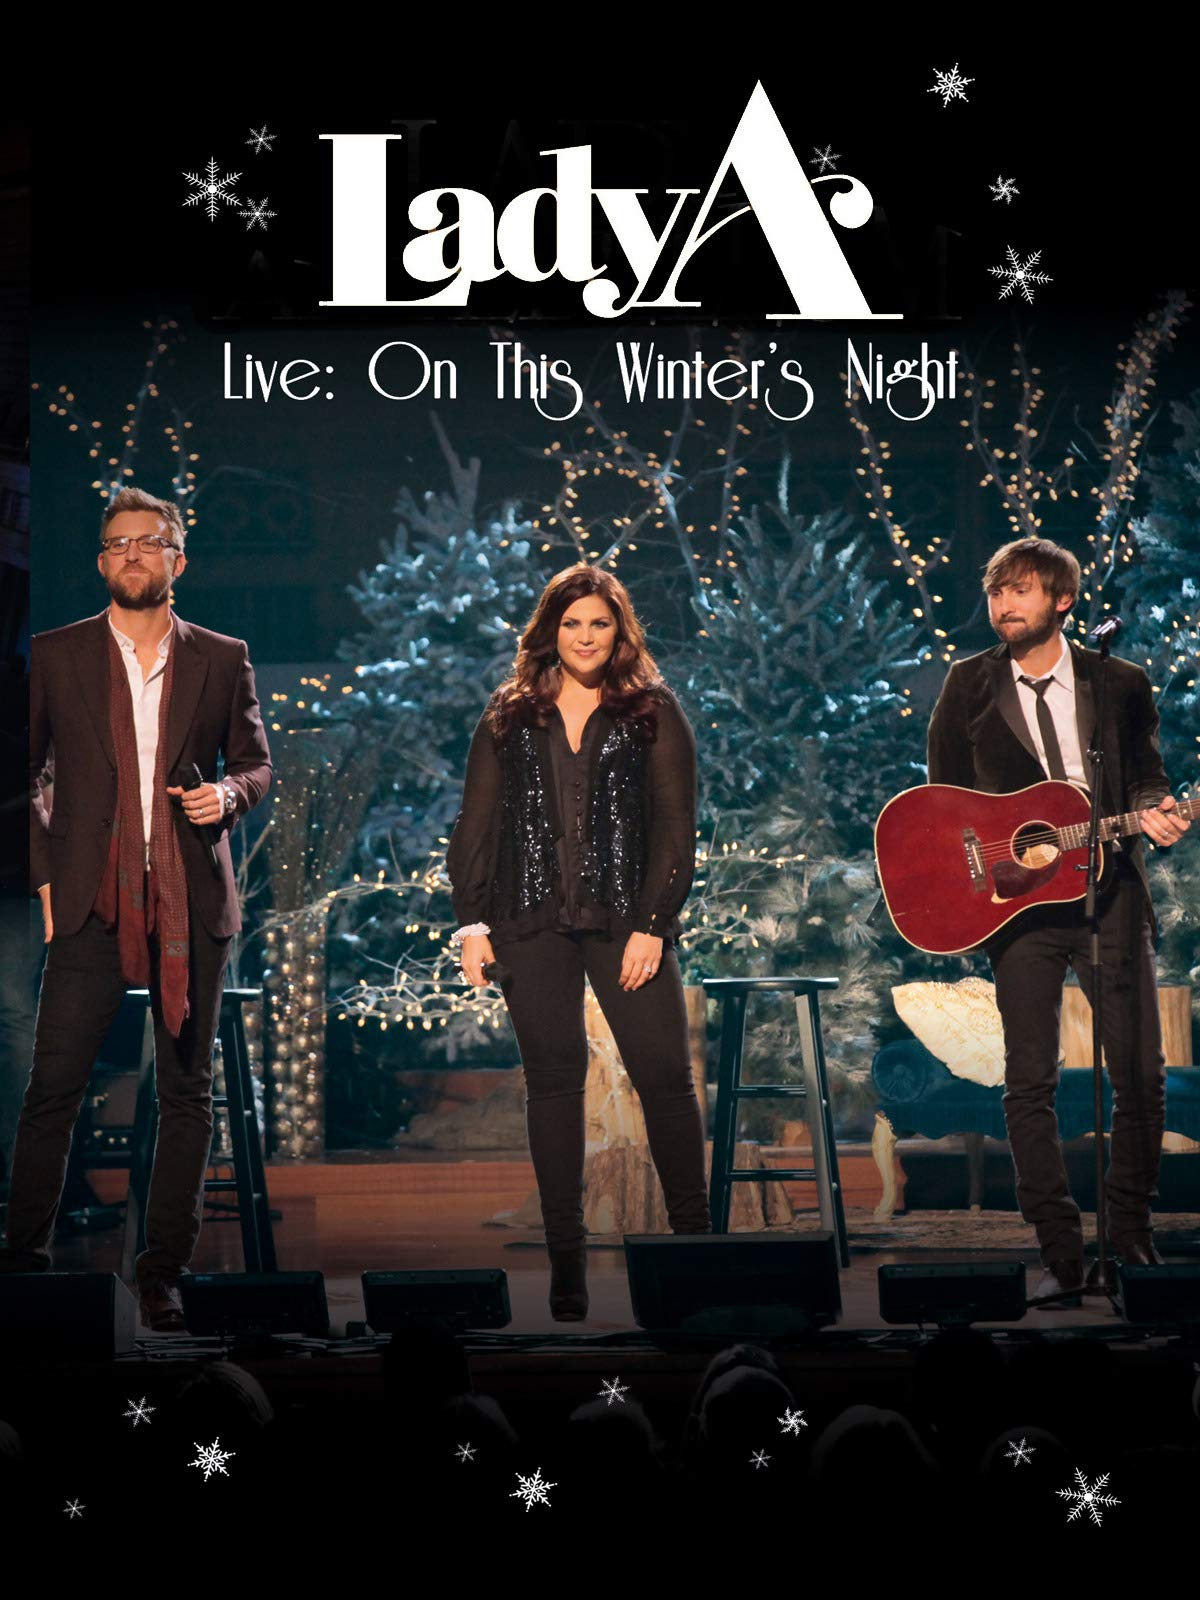 Lady A - Live: On This Winter's Night